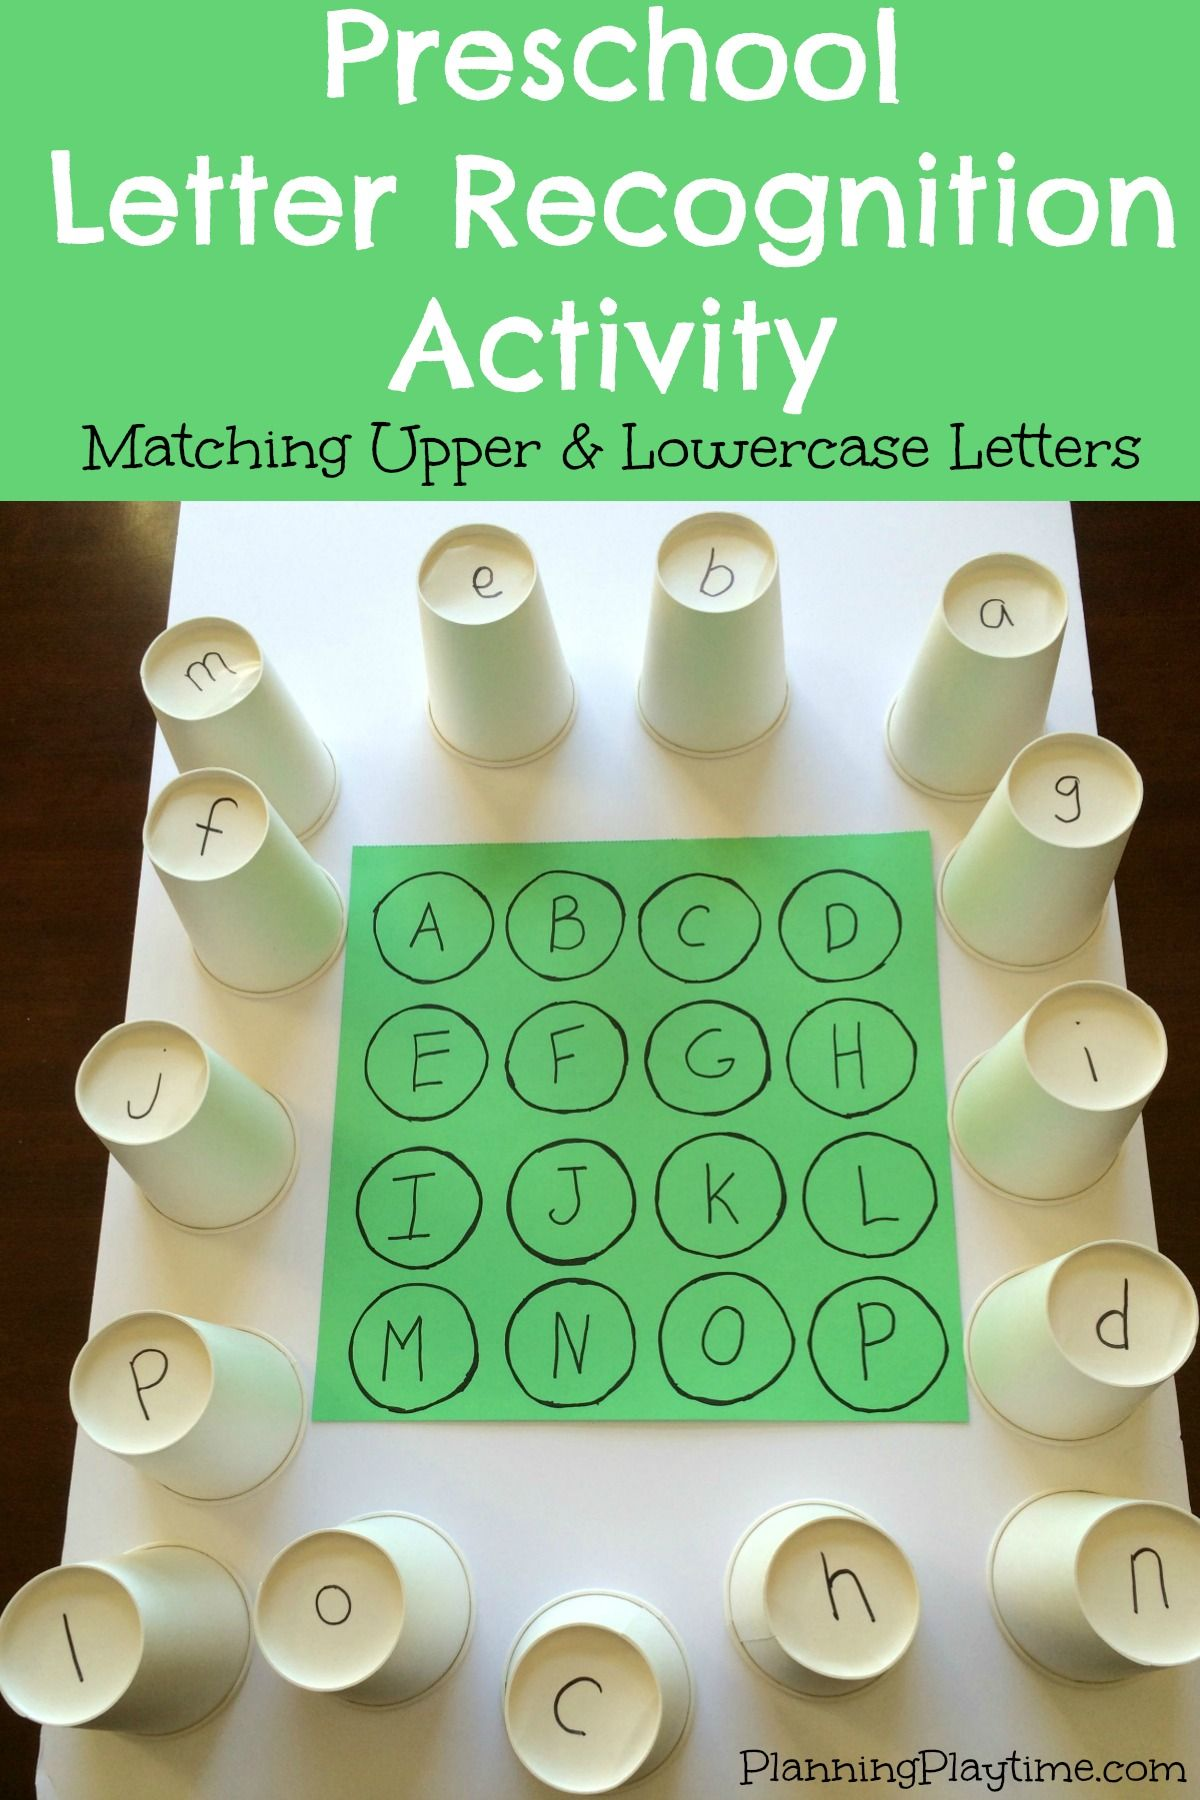 Preschool Letter Recognition Activities